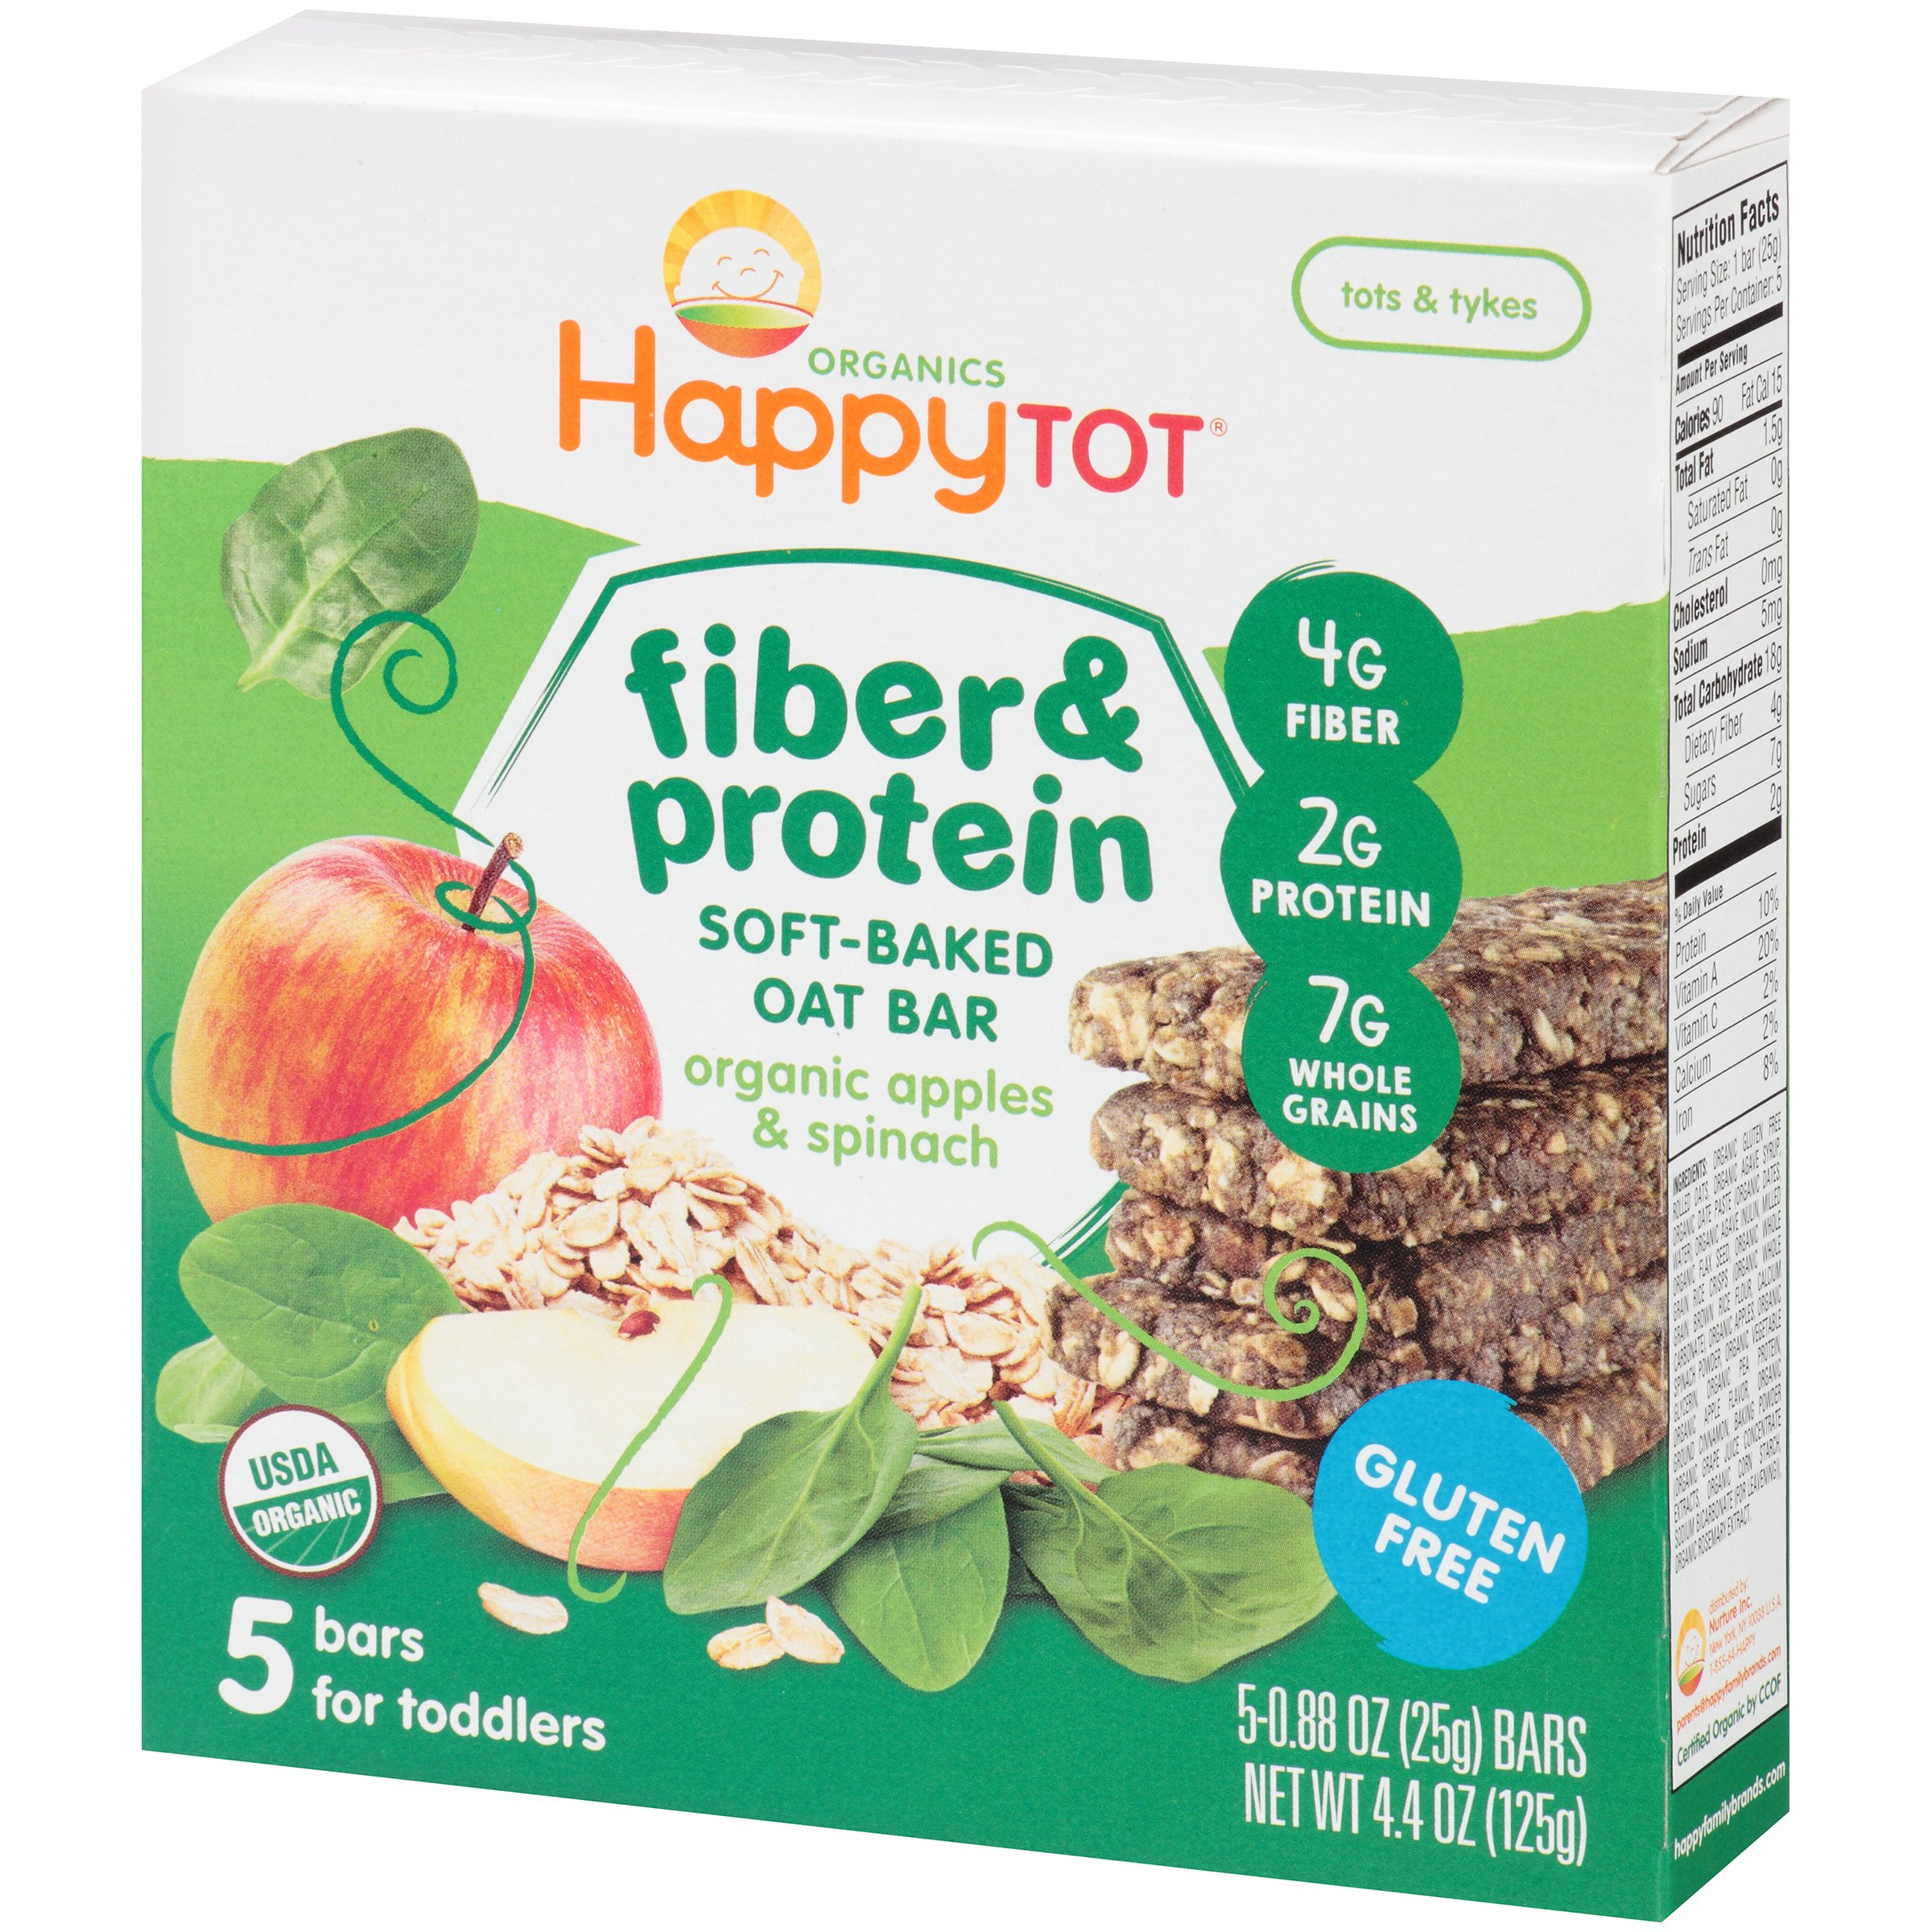 Happy Tot Organics Fiber & Protein Organic Apples & Spinach Soft-Baked Oat Bars, .88 oz, 5 count